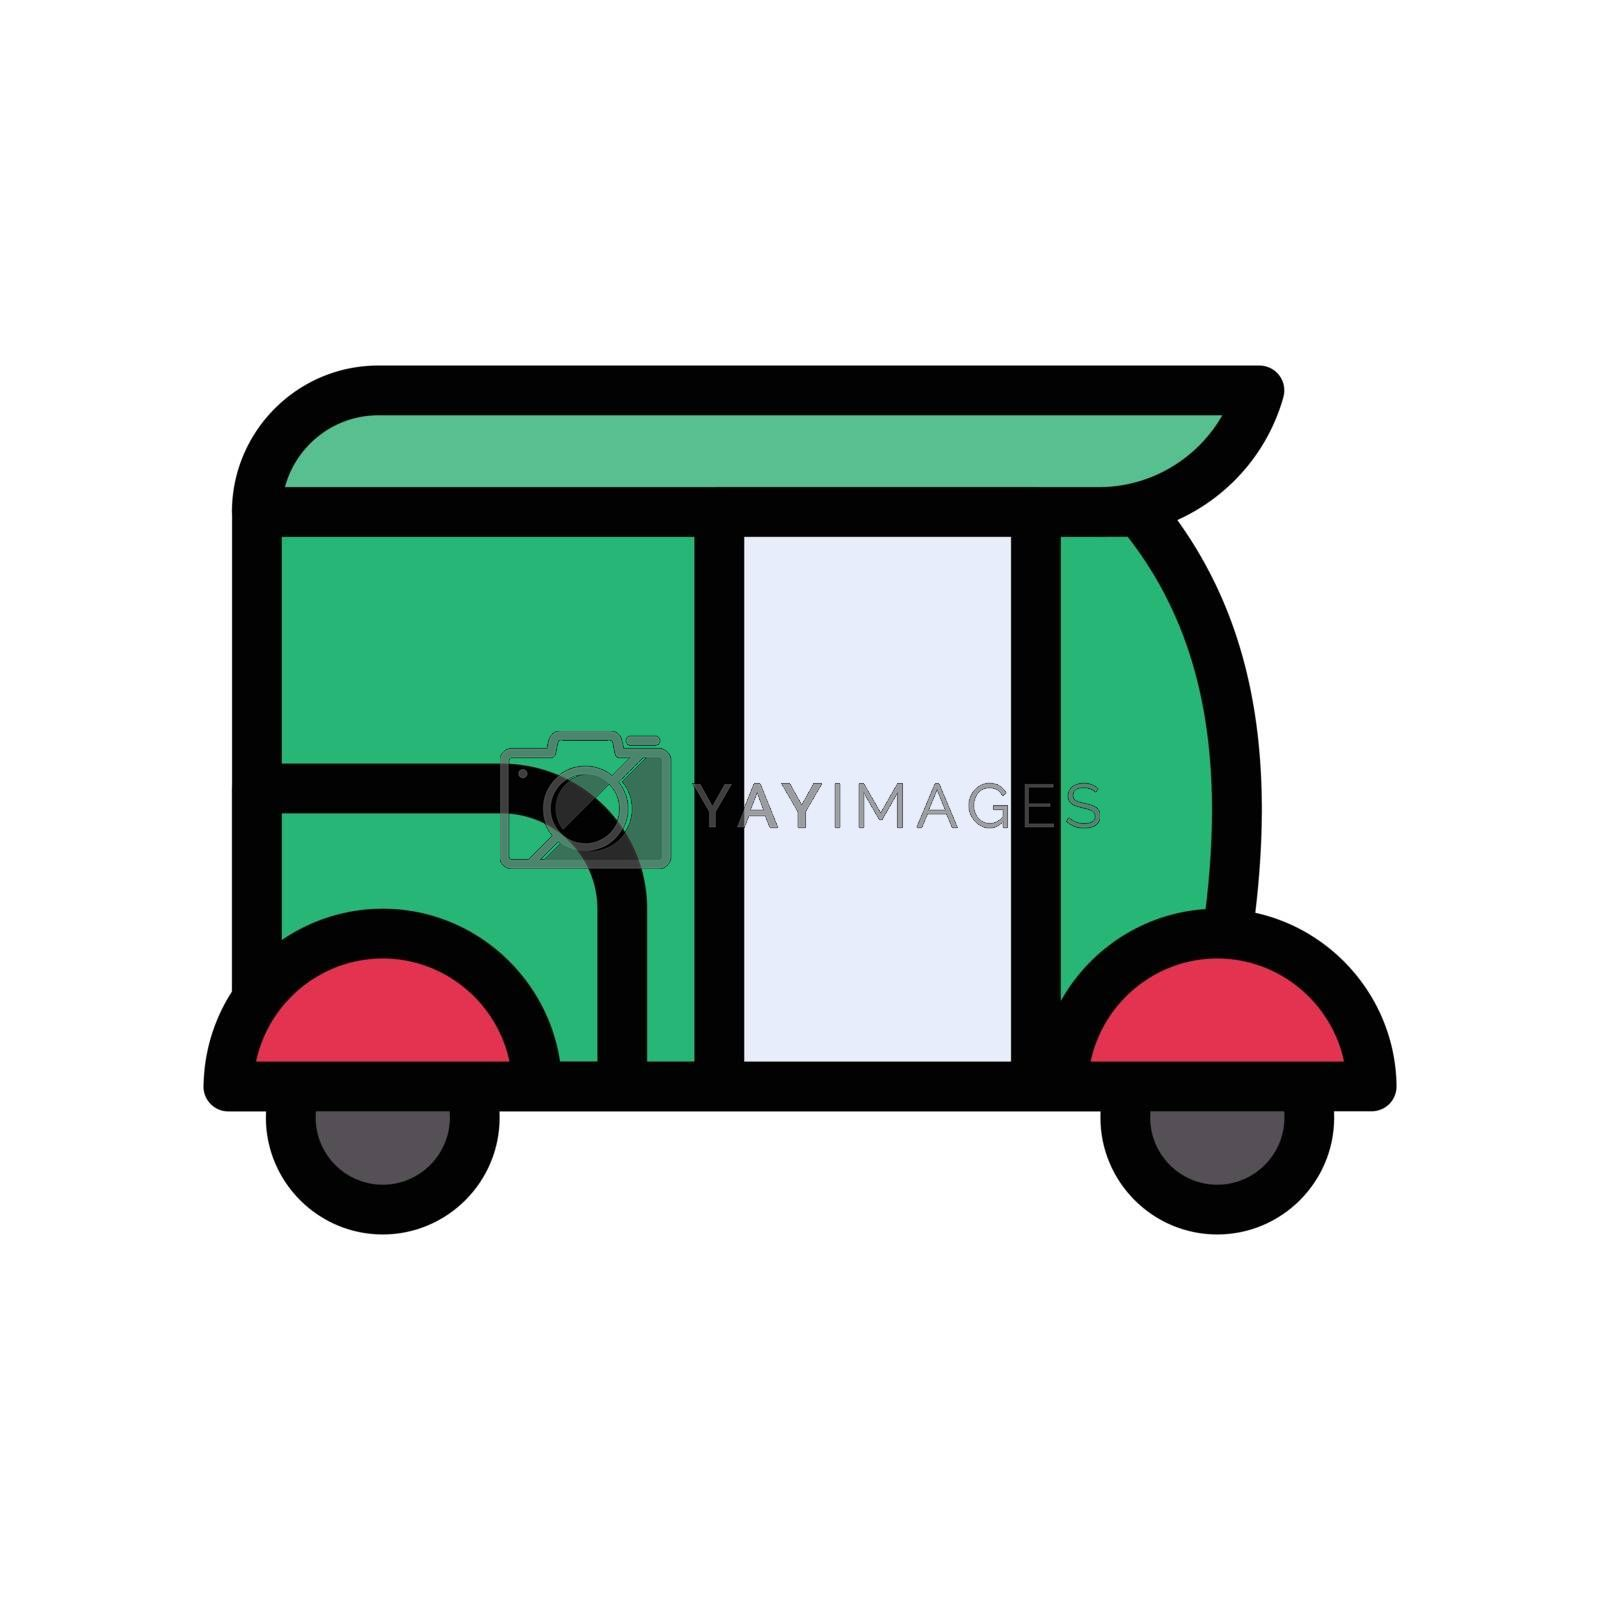 Royalty free image of travel  by vectorstall